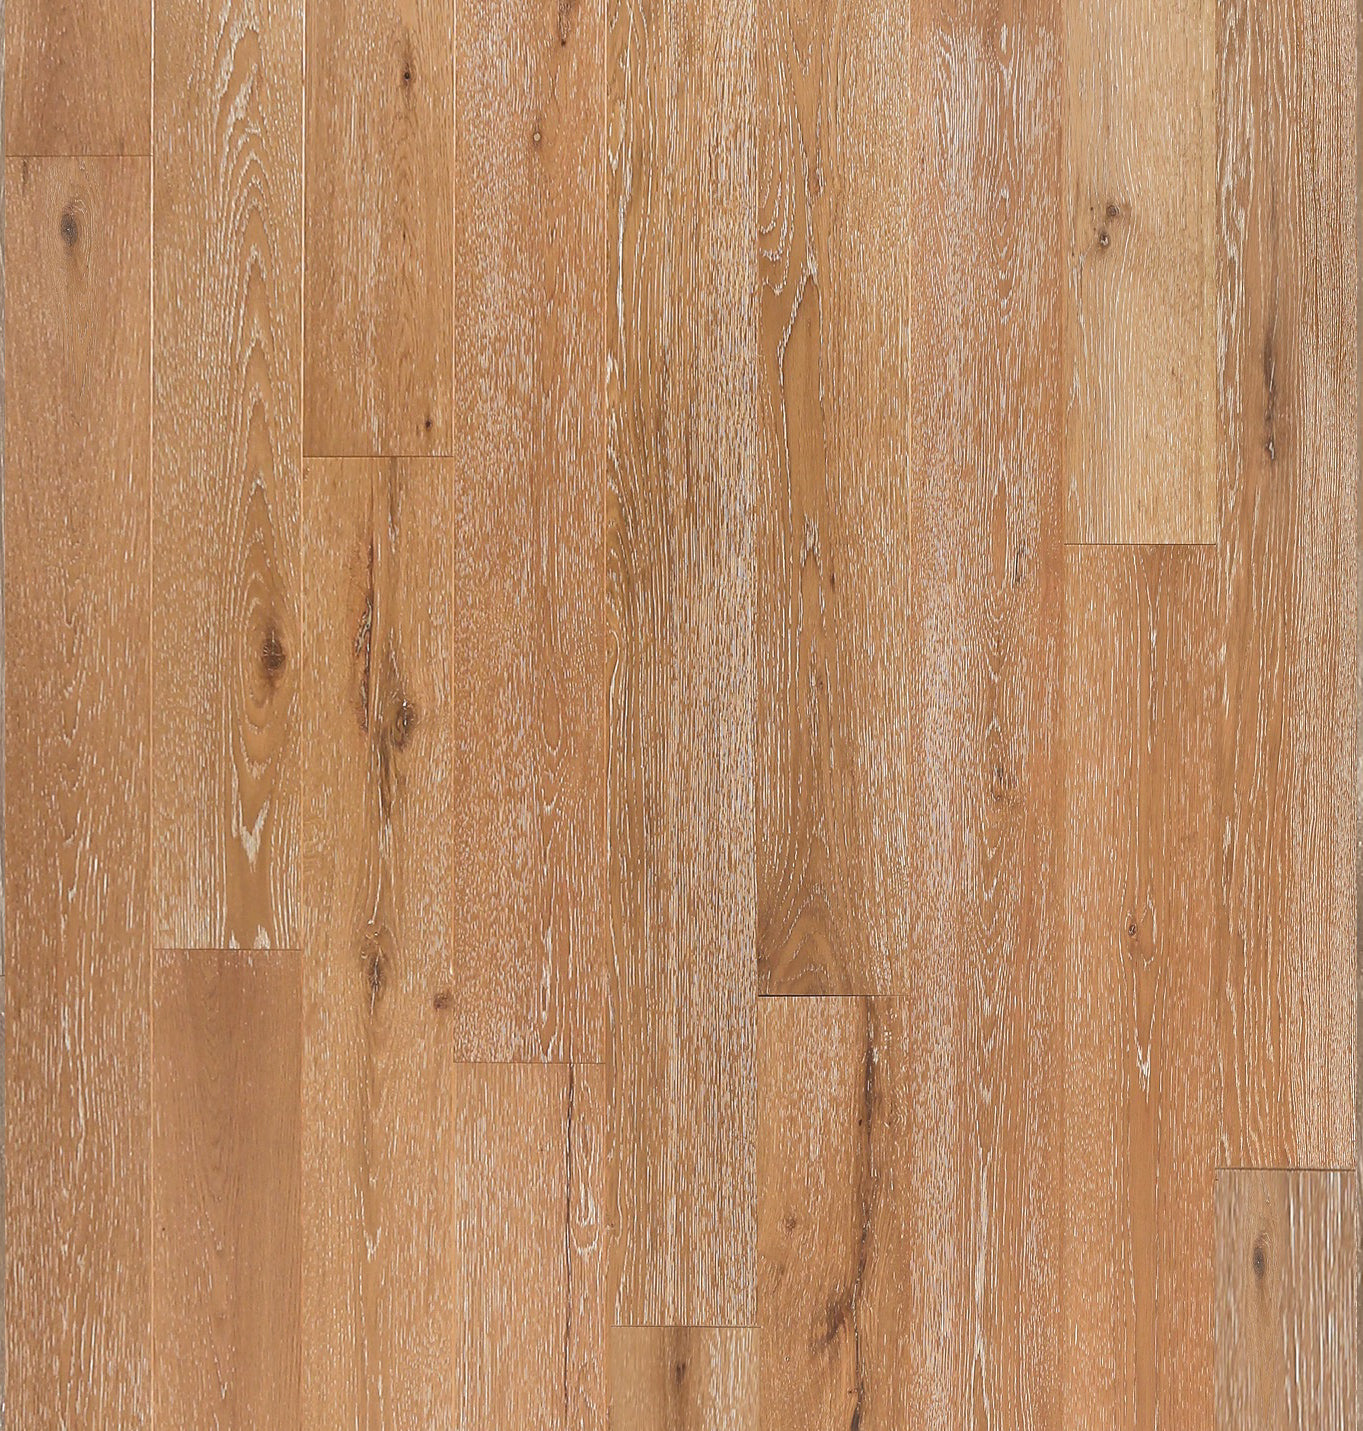 Choice Collection: Mist Wash White Oak